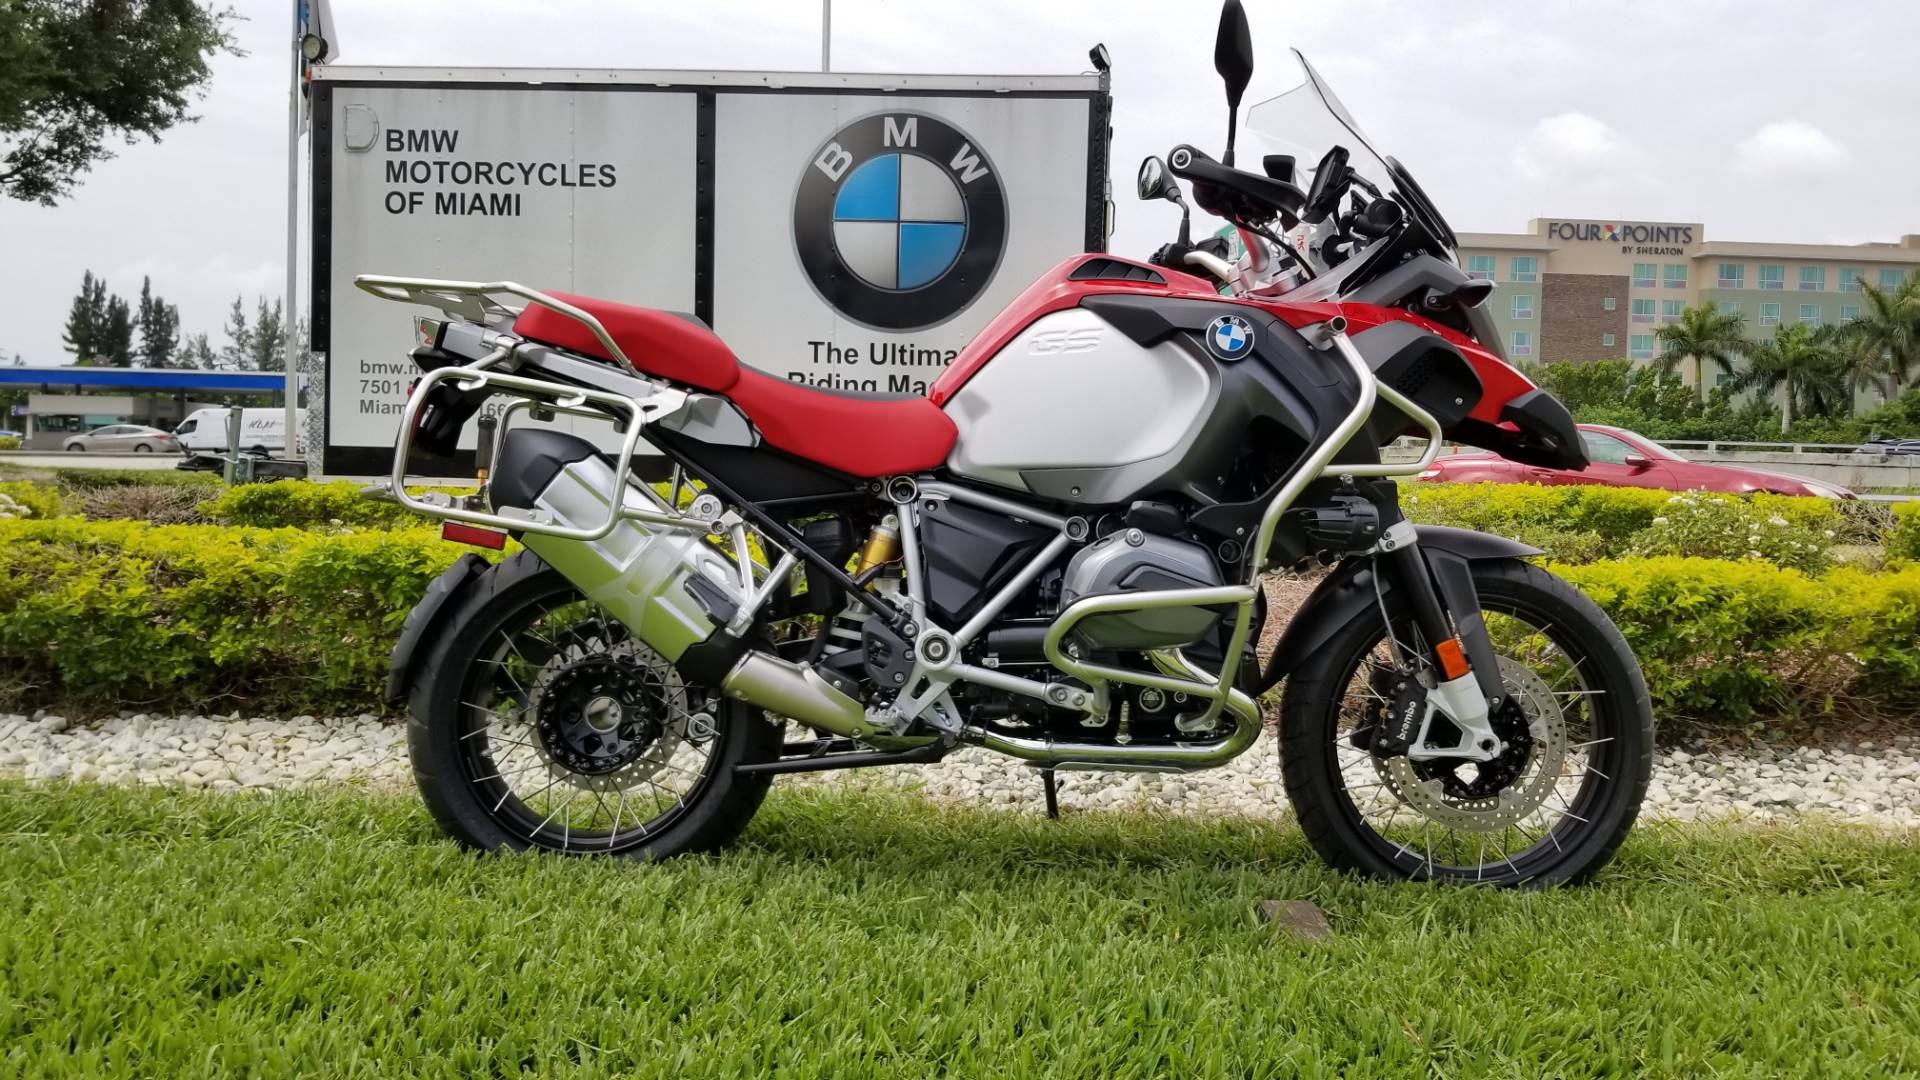 New 2018 BMW R 1200 GSA For Sale, BMW R 1200GSA For Sale, BMW Motorcycle R1200GSA, new BMW Adventure, Adventure, DUAL, BMW.